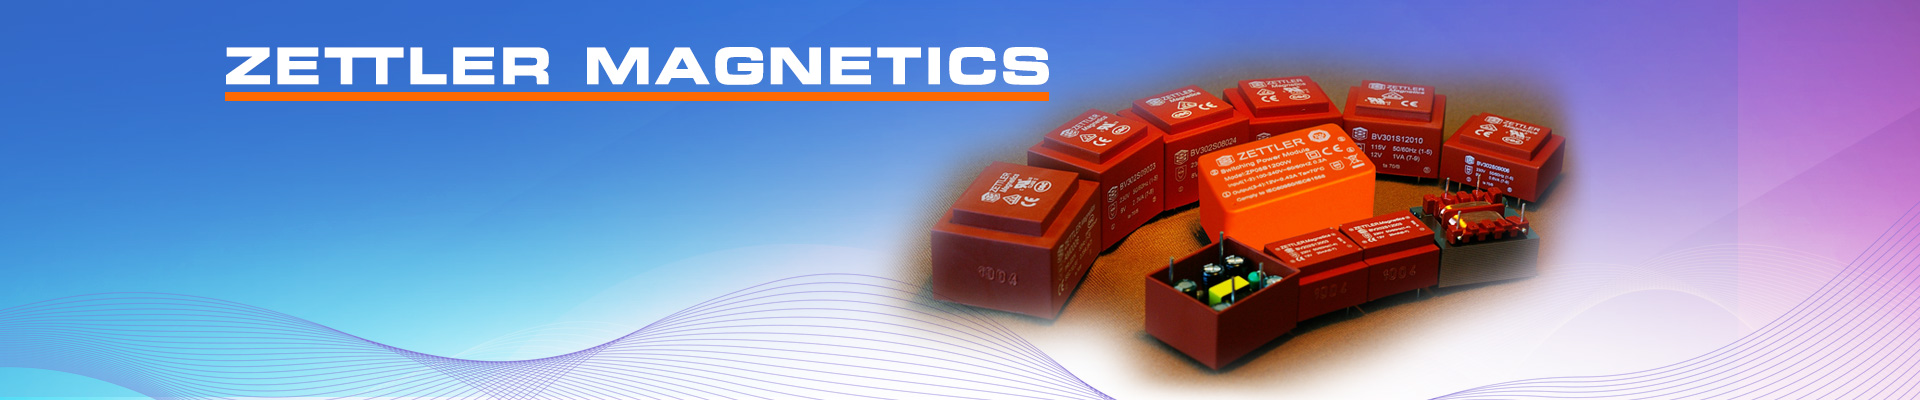 ZETTLER Group Magnetics